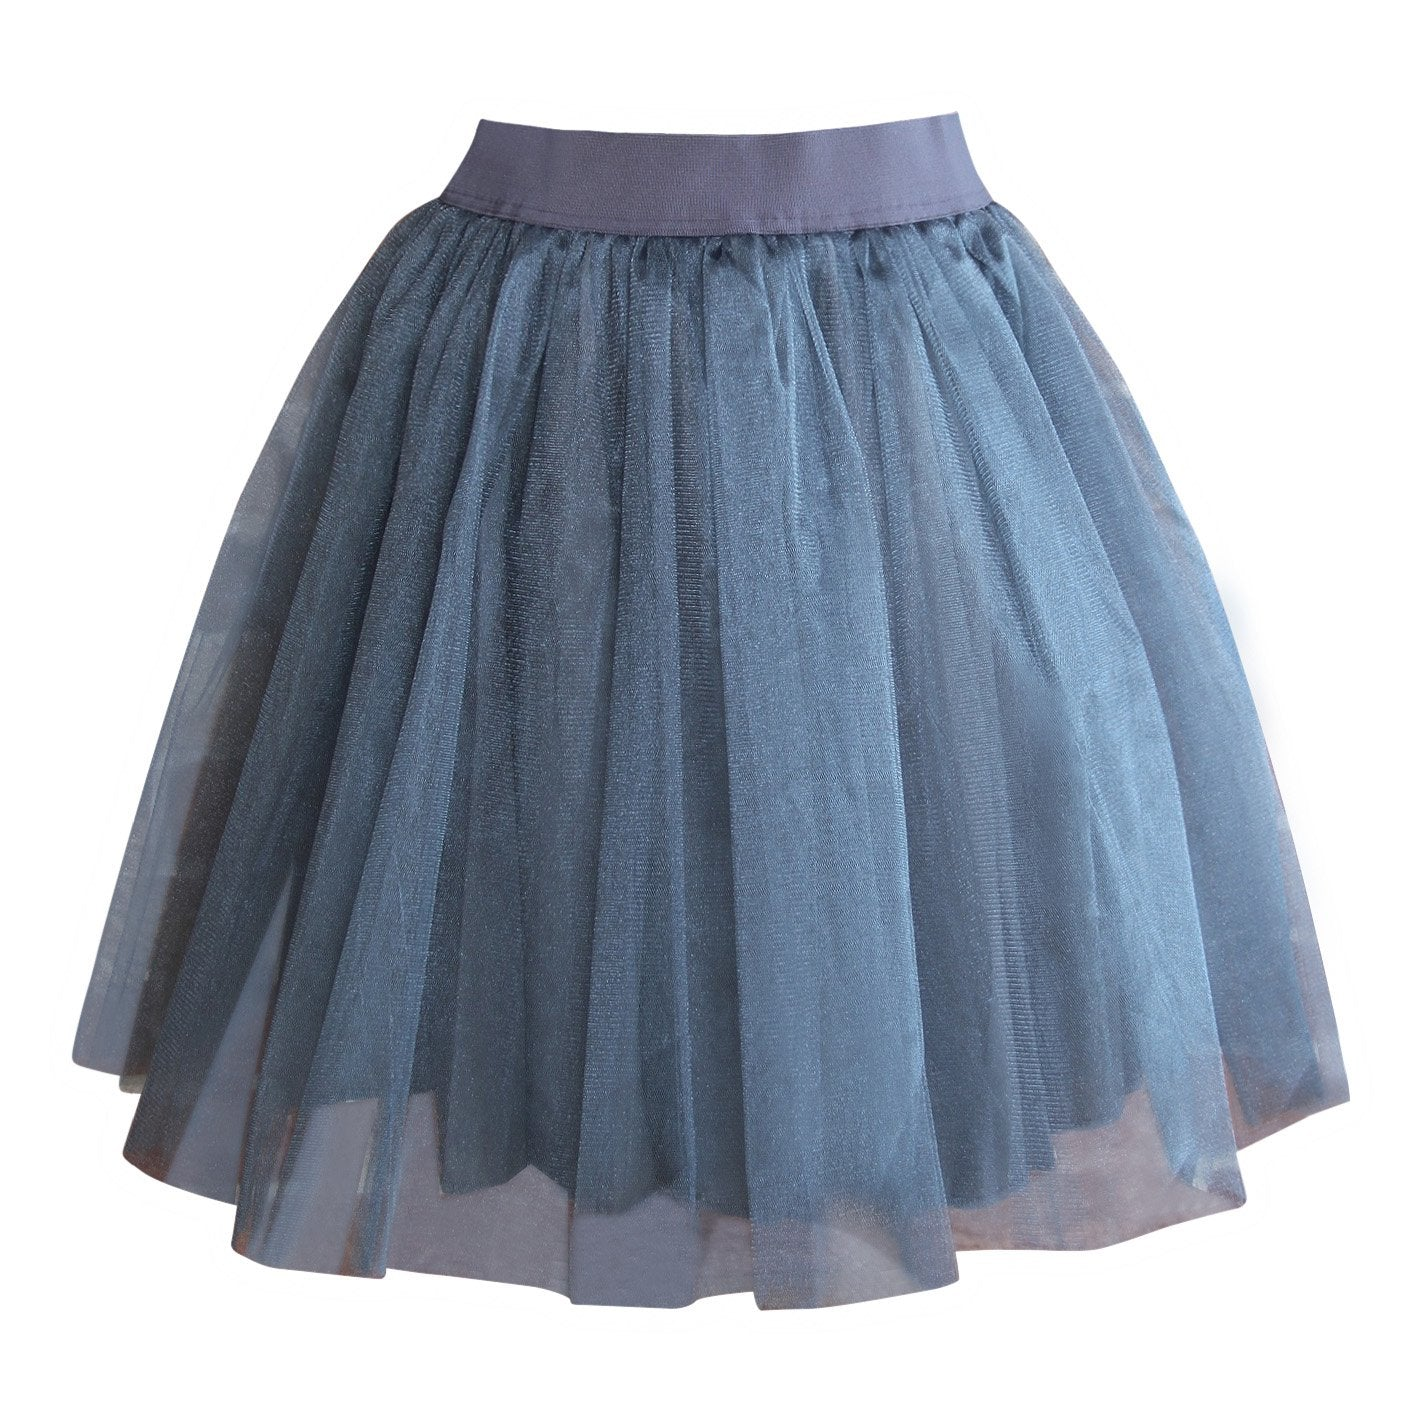 defa020f58 Grey Tulle Skirts - Matching Mum And Daughter Set Skirt. Grey Tulle Skirts  - Matching Mum And Daughter Set Skirt